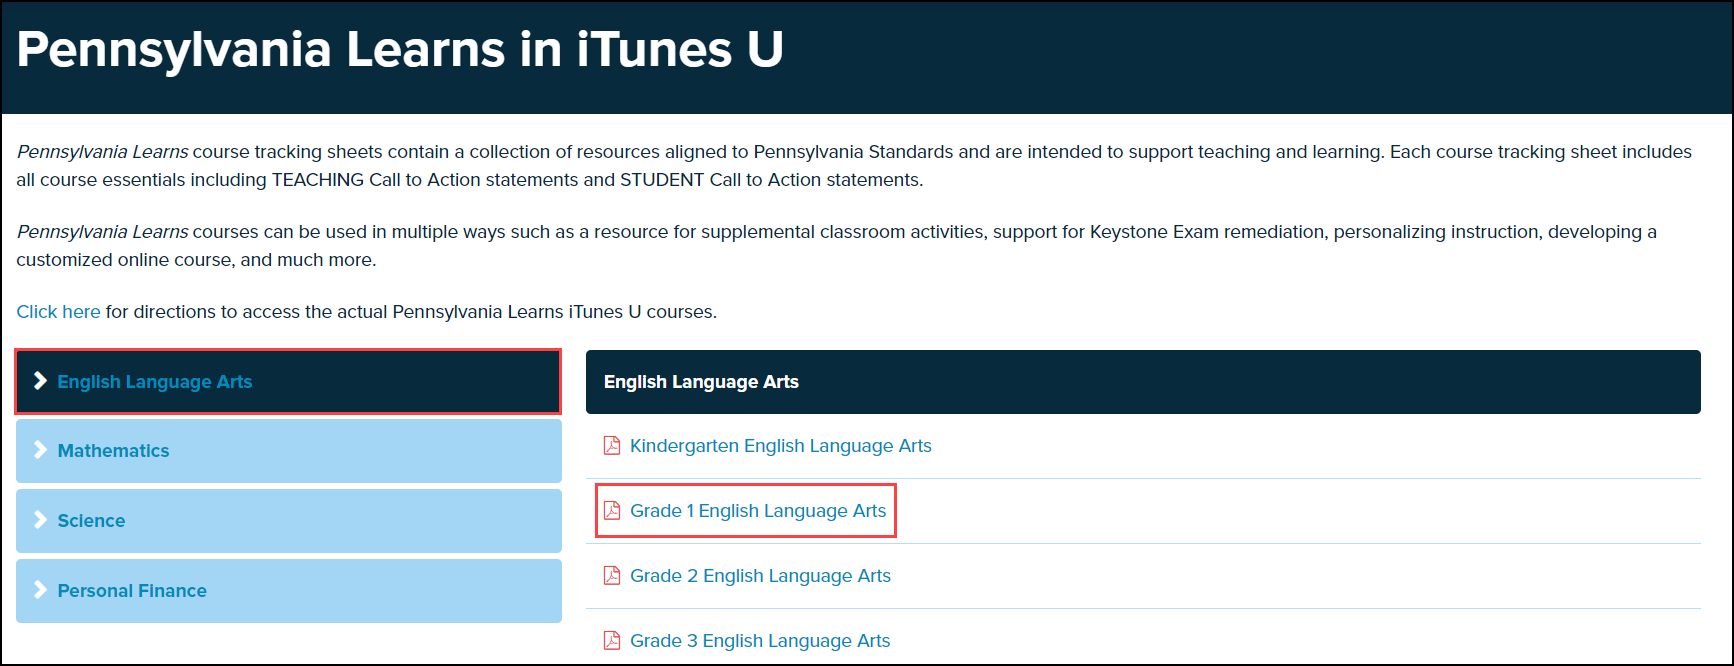 pennsylvania learns in I tunes U screen with subject and document highlighted